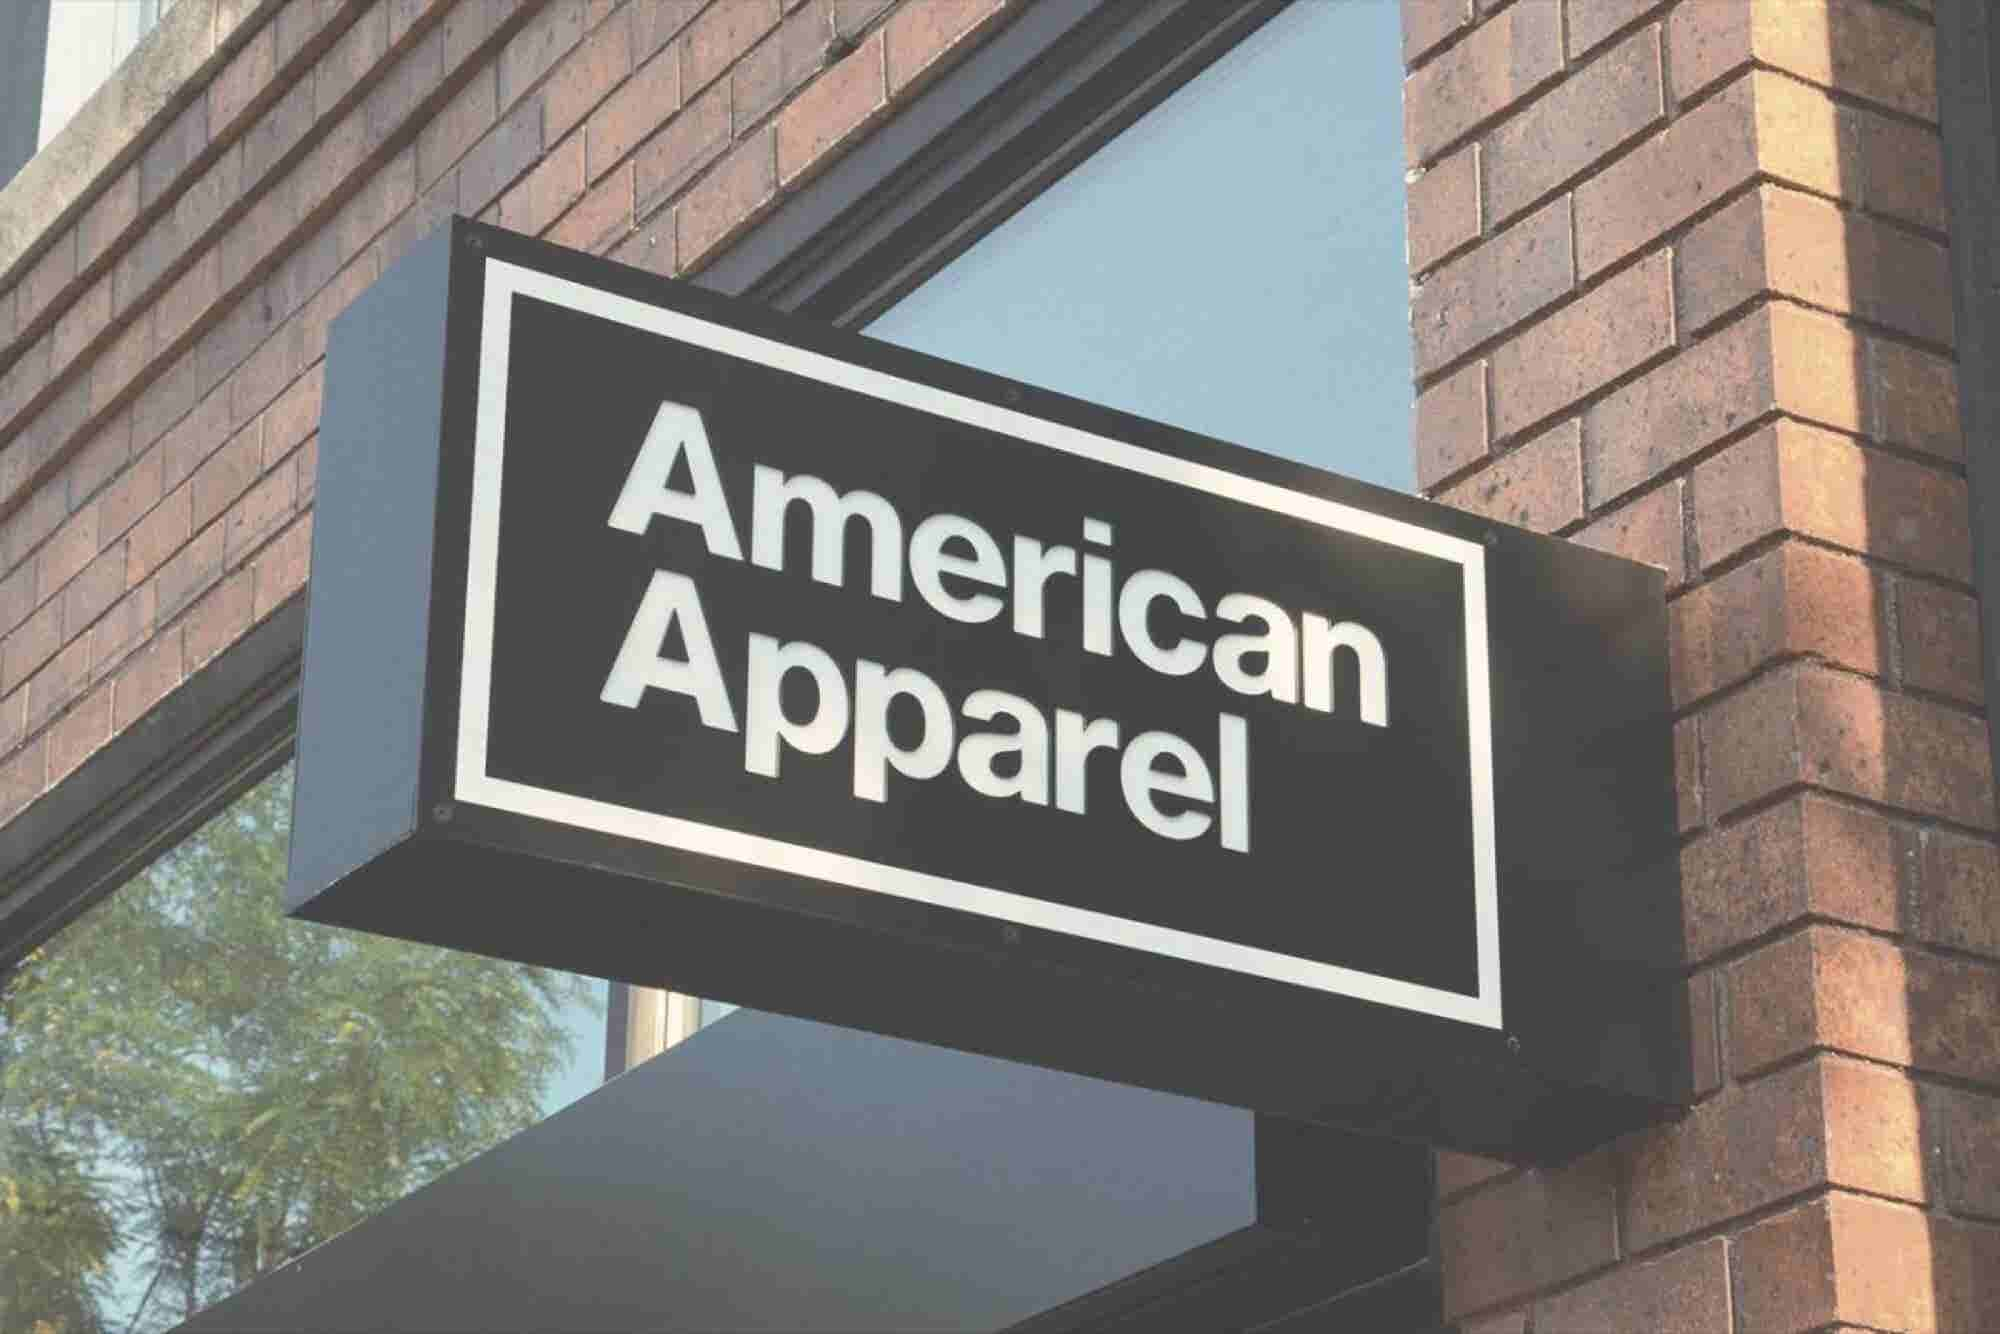 American Apparel Lays Off Workers, Considers Outsourcing